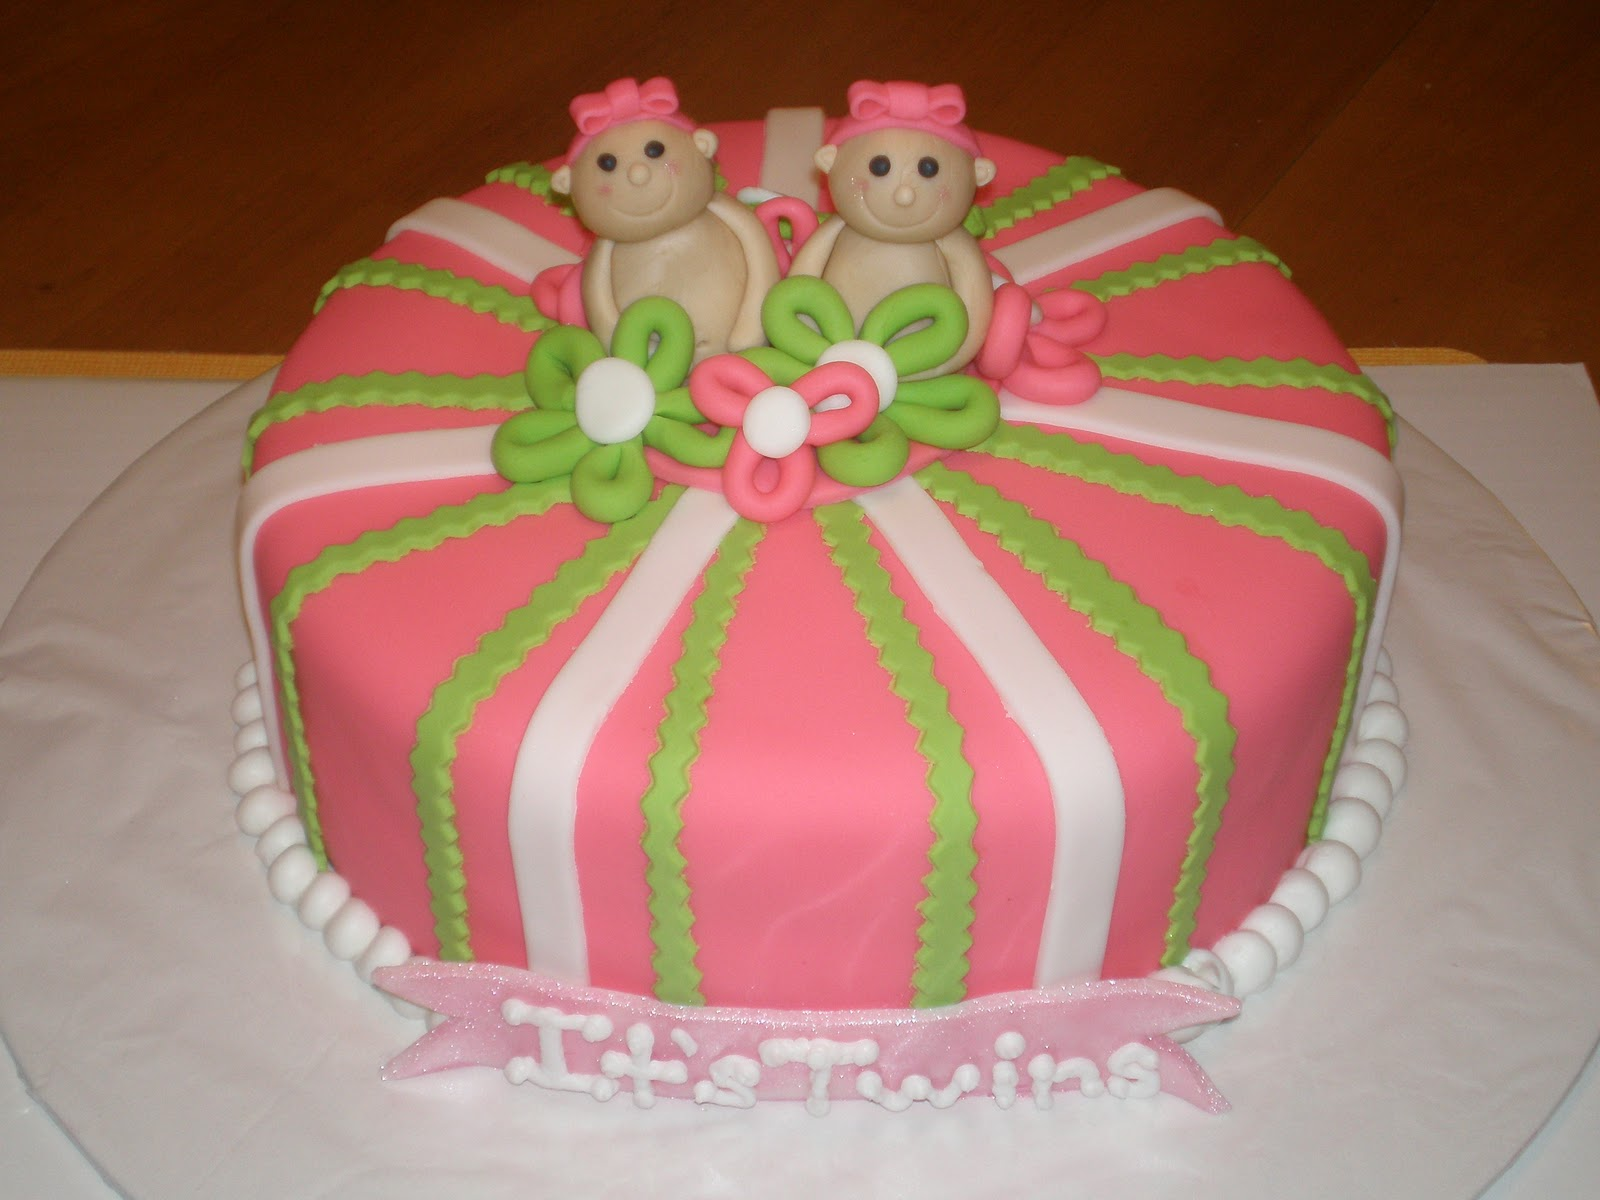 Baby Shower Cake Inscriptions. .Thank You Email After Surprise Baby ...